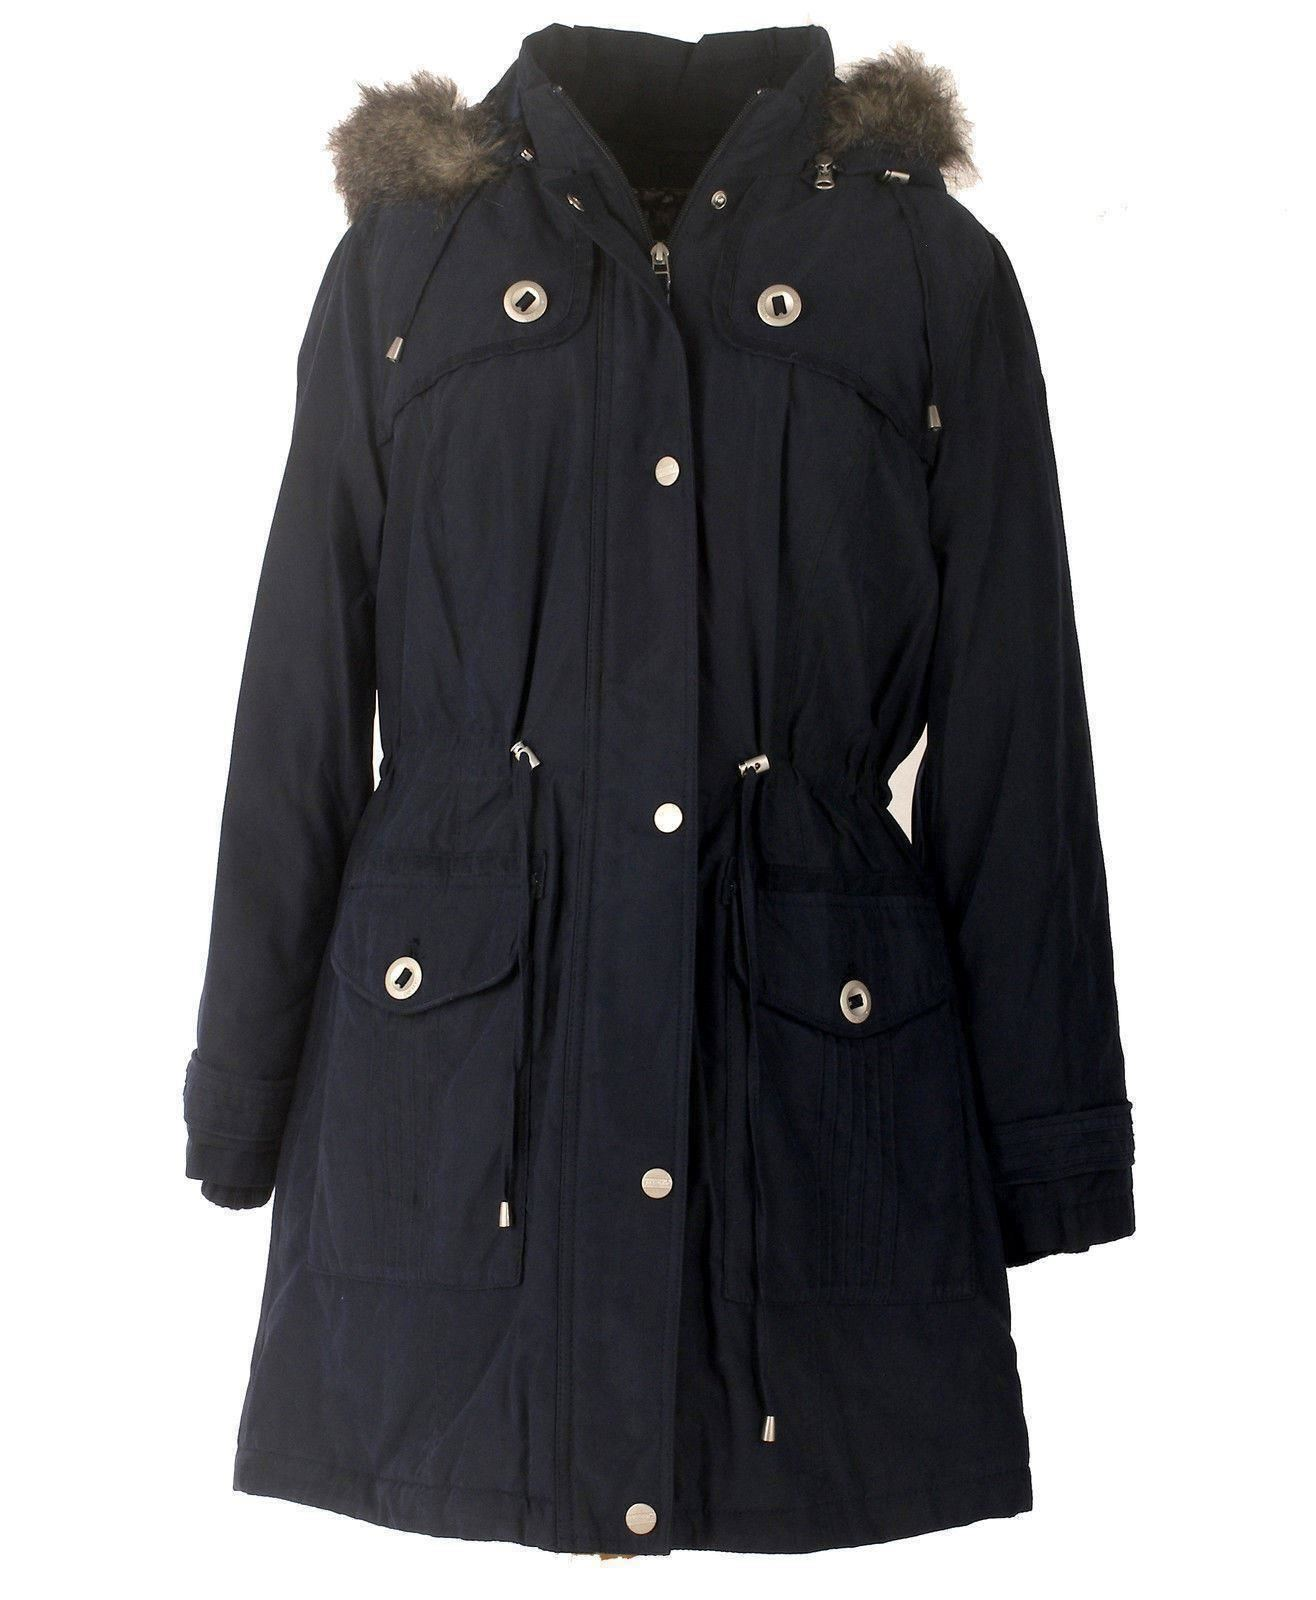 Shop winter jackets & coats from DICK'S Sporting Goods. Browse all warm winter coats for men, women and kids from The North Face, Columbia, Nike and more top brands.